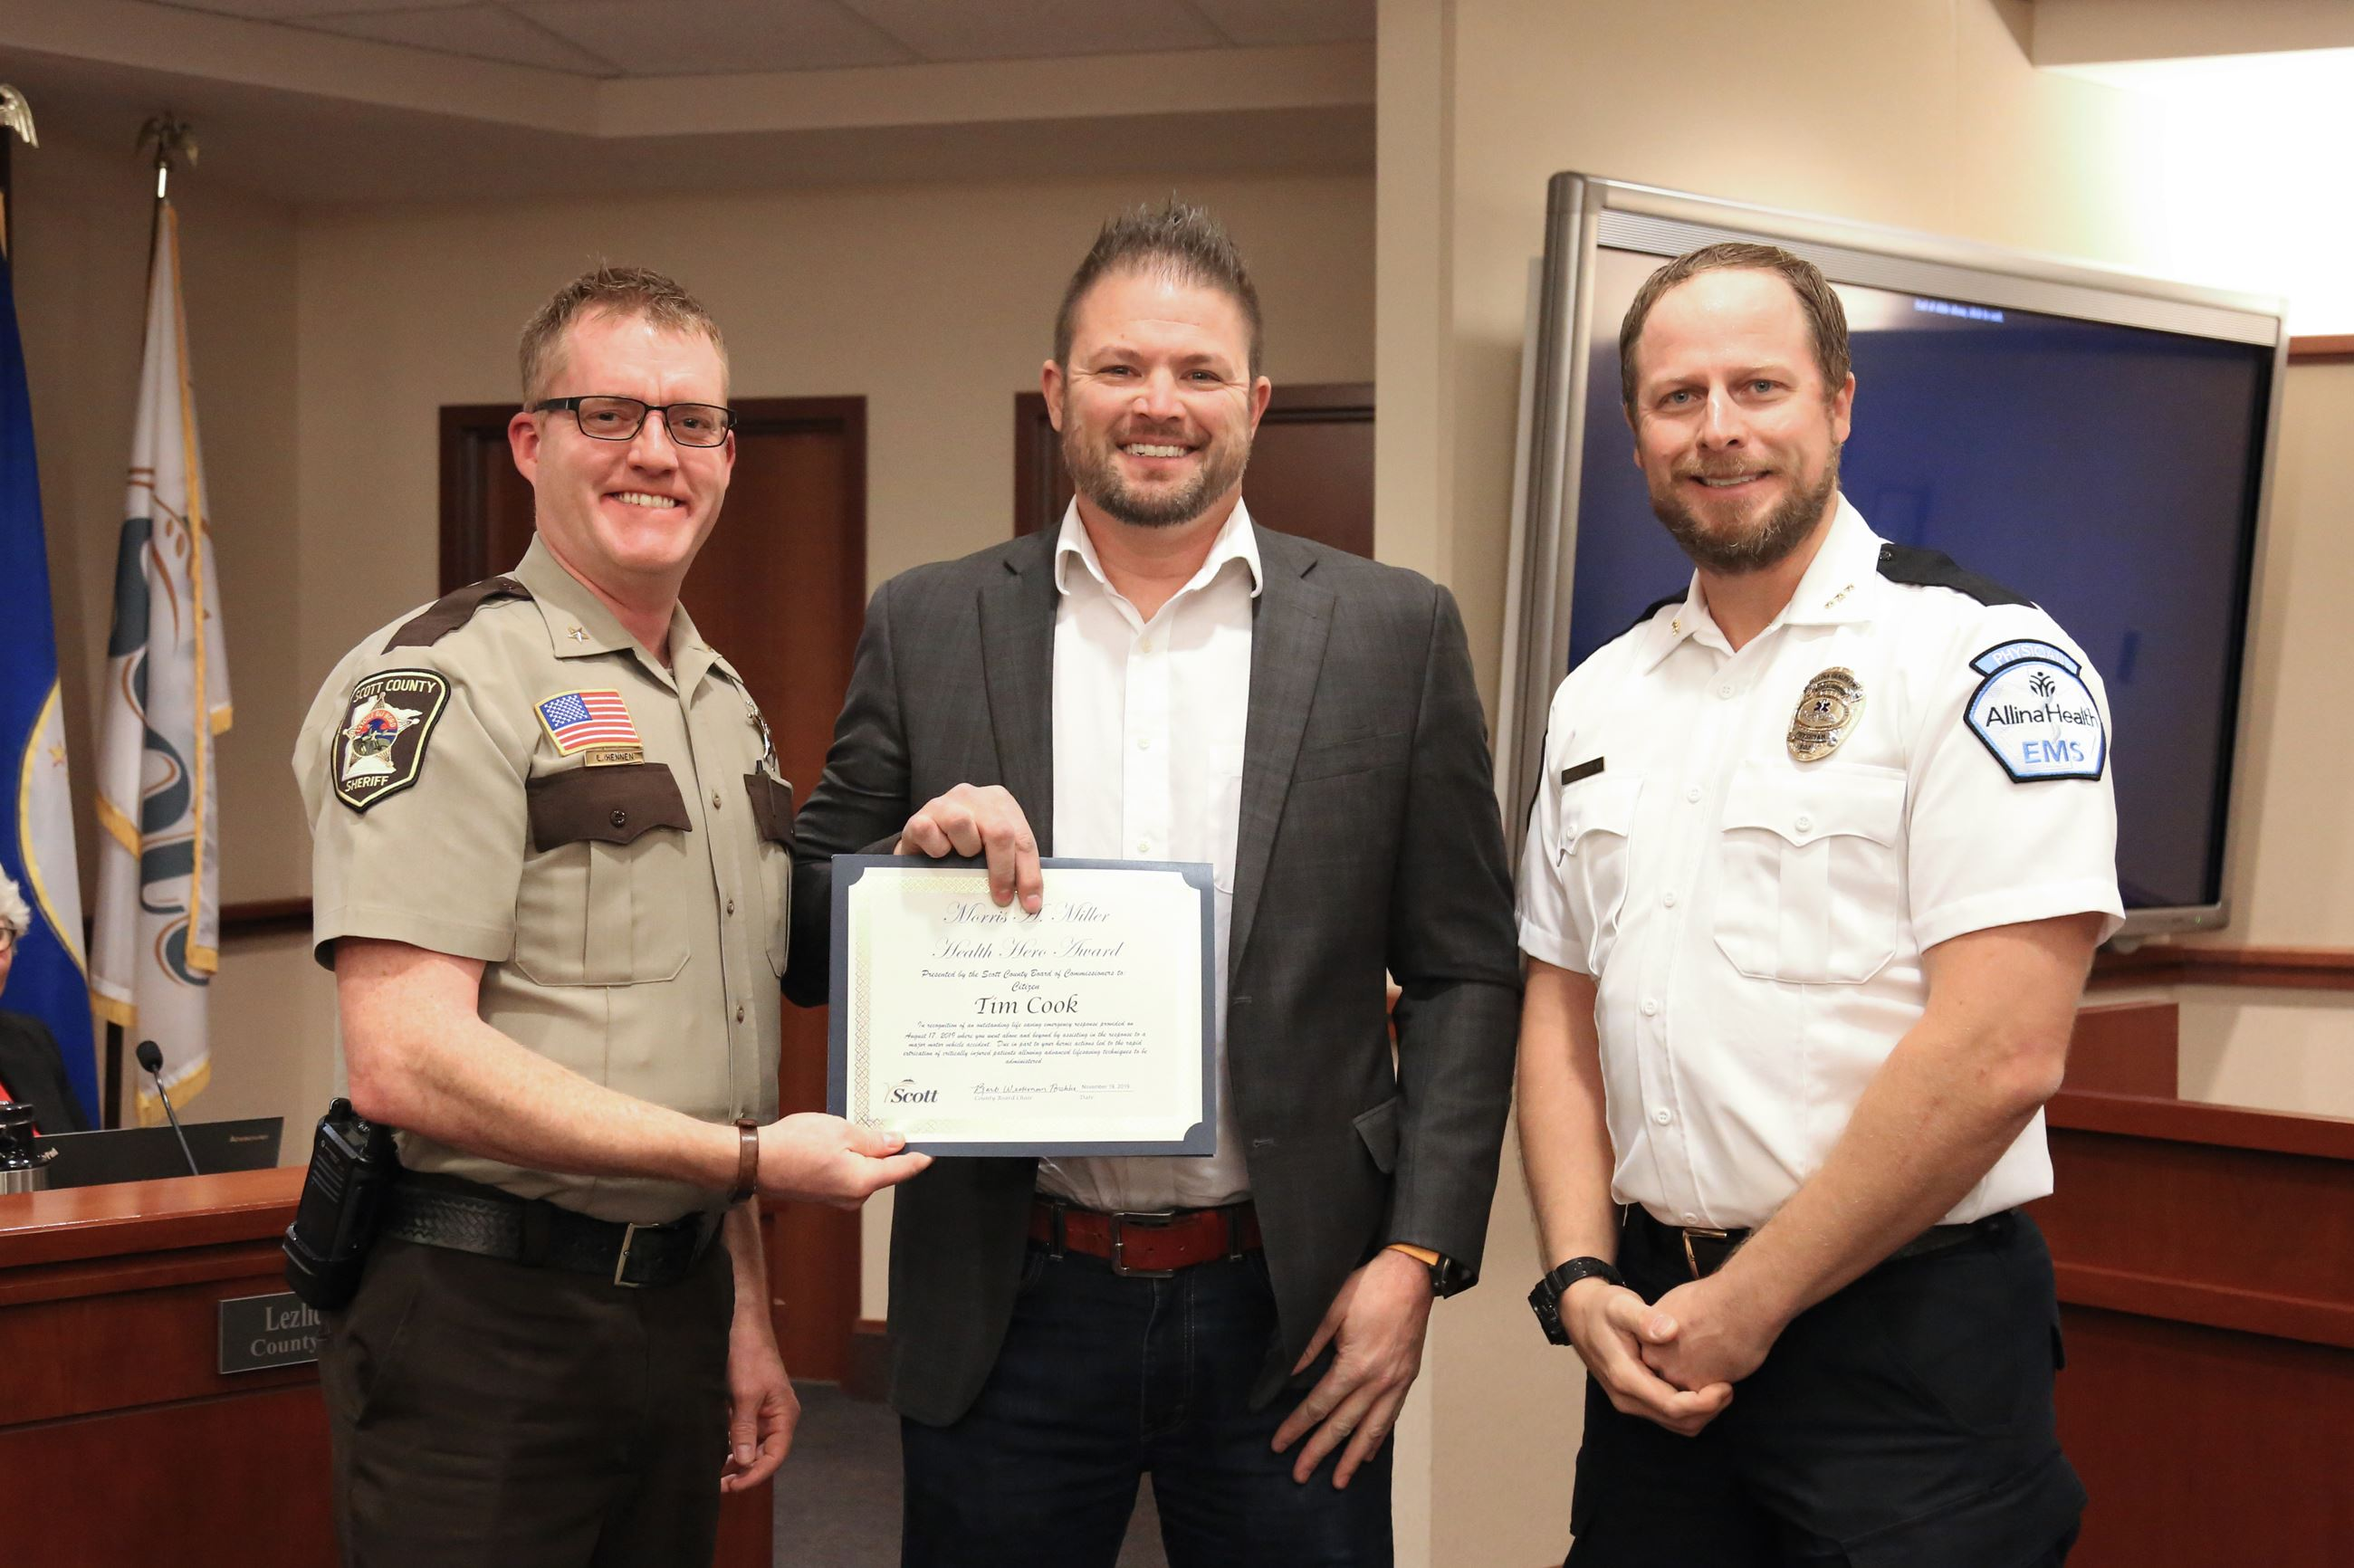 Sheriff Luke Hennen, citizen Tim Cook, Allina Dr. Andrew Stevens